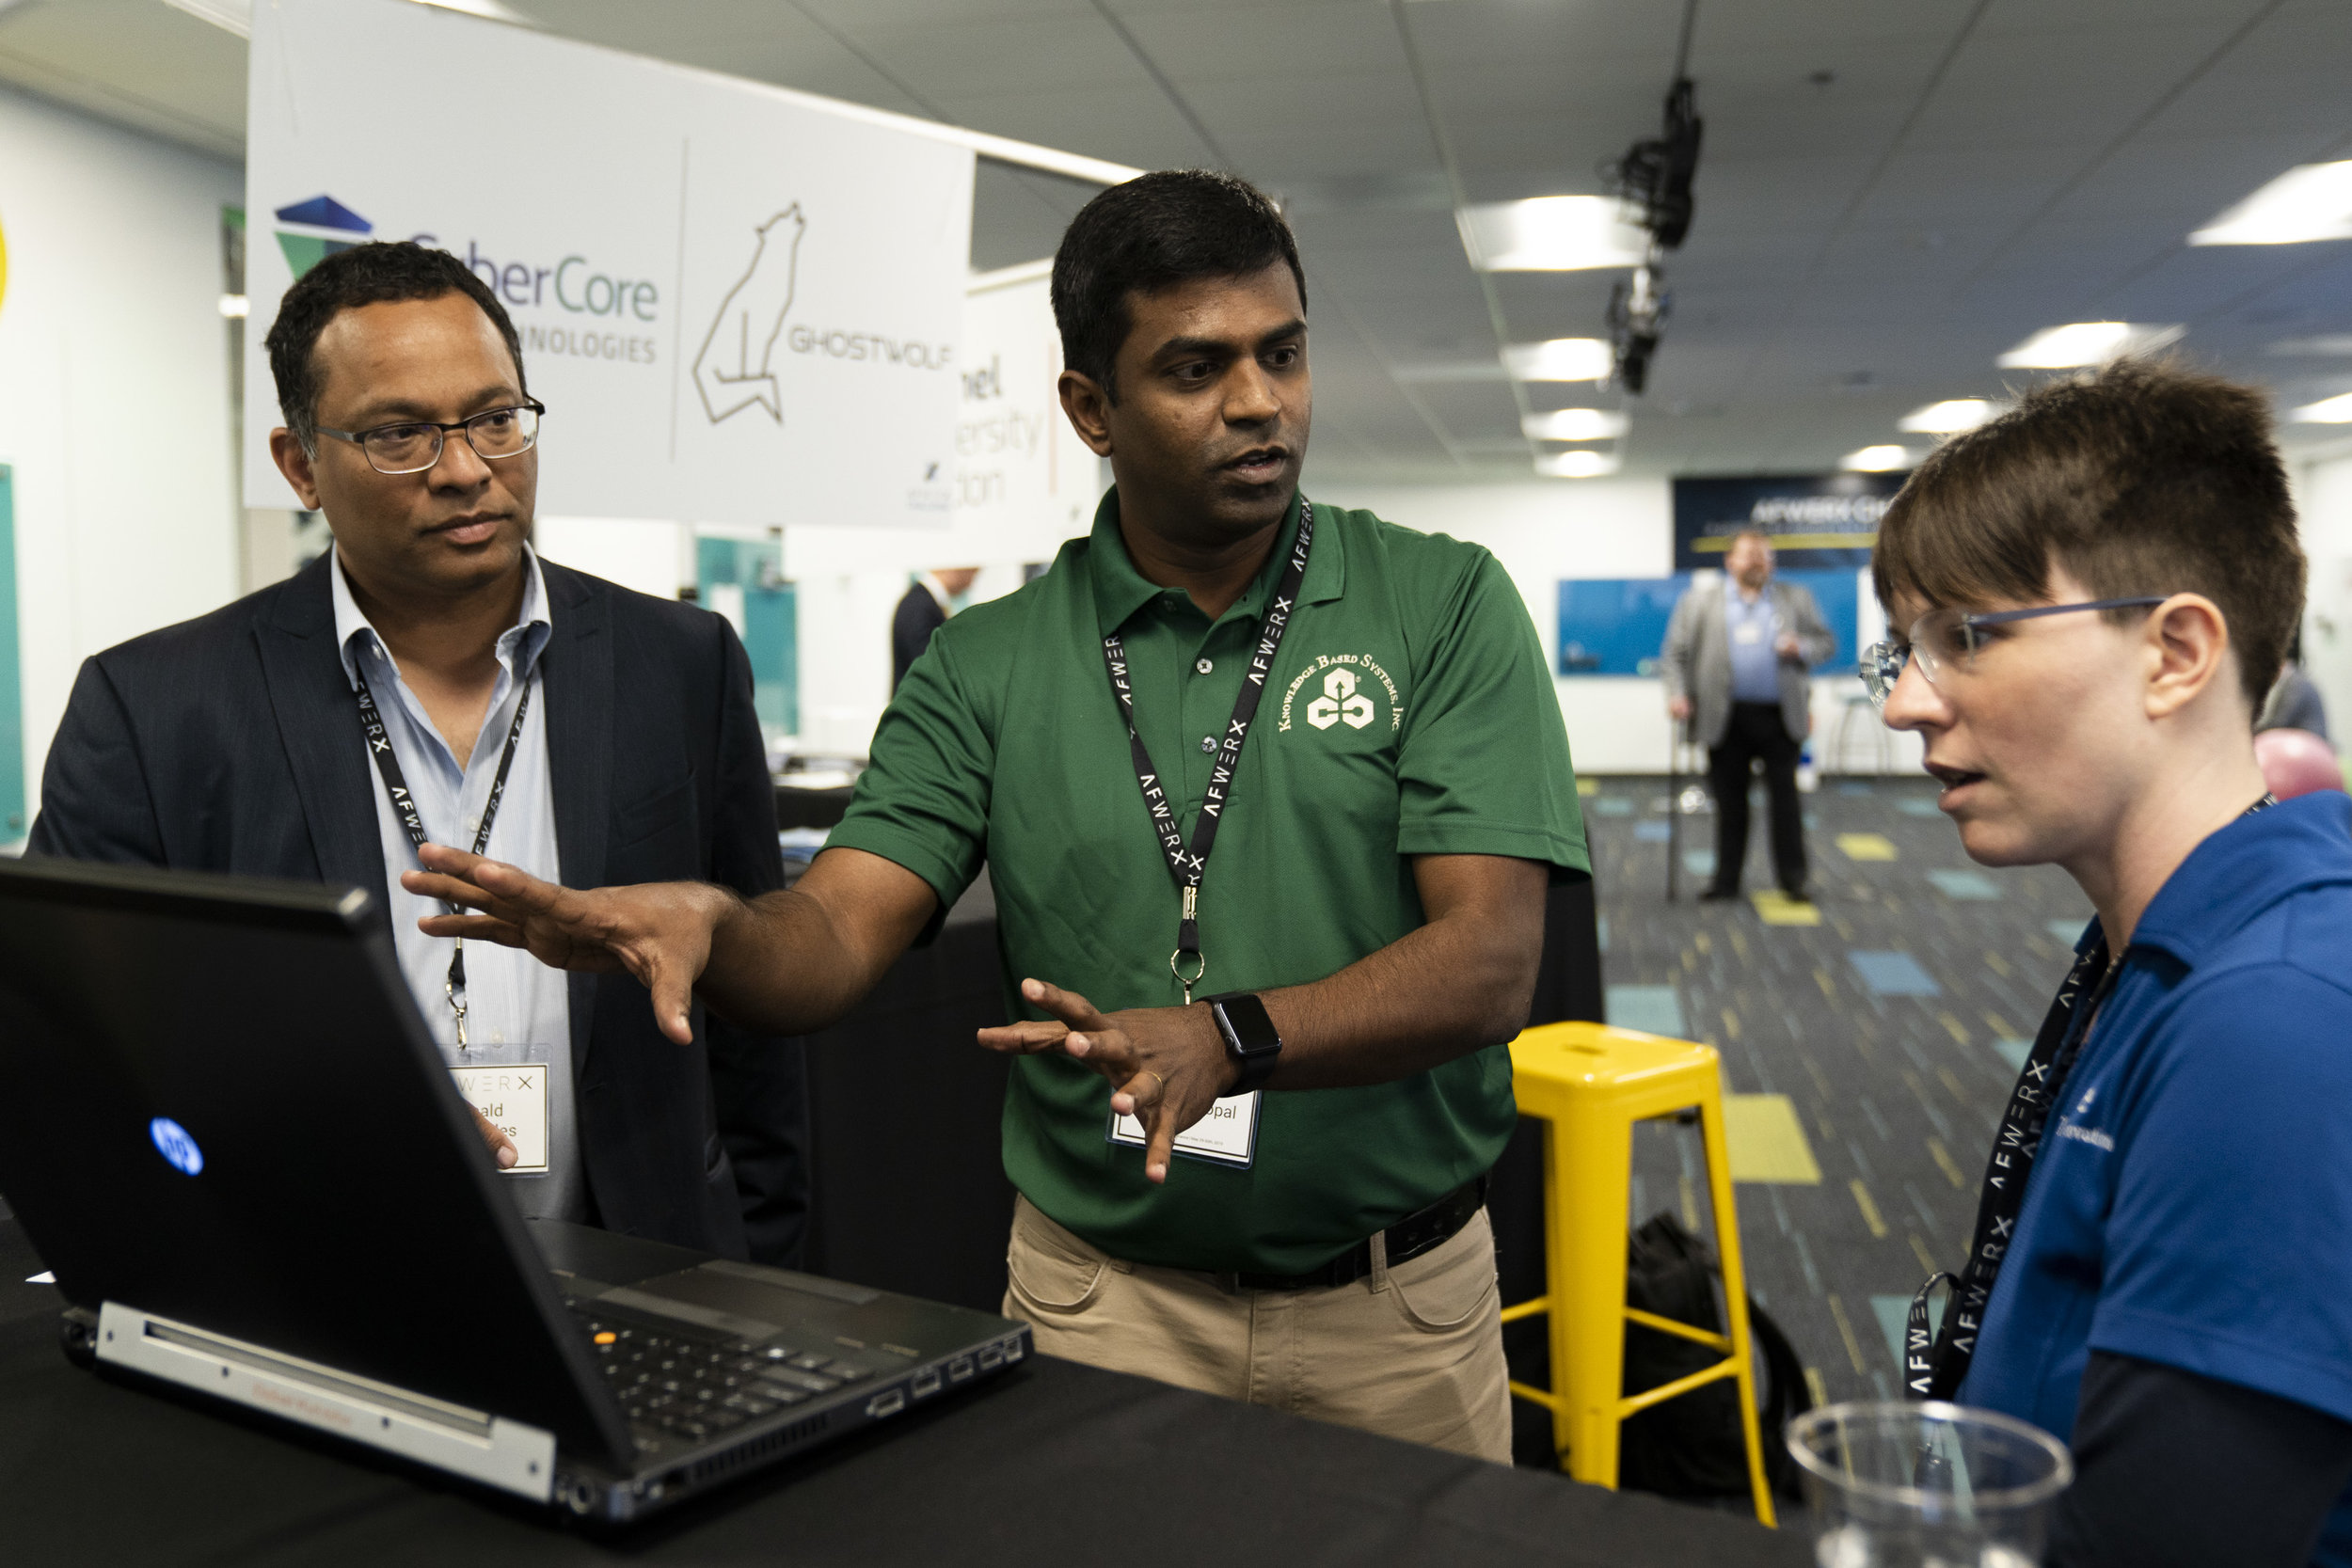 Karthic Mandanagopol of Knowledge Based Information Systems, Inc. discusses supply-chain provenance techniques with other participants at the showcase challenge held May 29-30 at the AFWERX Vegas Innovation Hub. Select participants will move on to a prototyping phase that will culminate in November 2019. The entire AFWERX innovations process will take less than 12 months, from initial challenge to prototype assessment. Photo by AFWERX Vegas